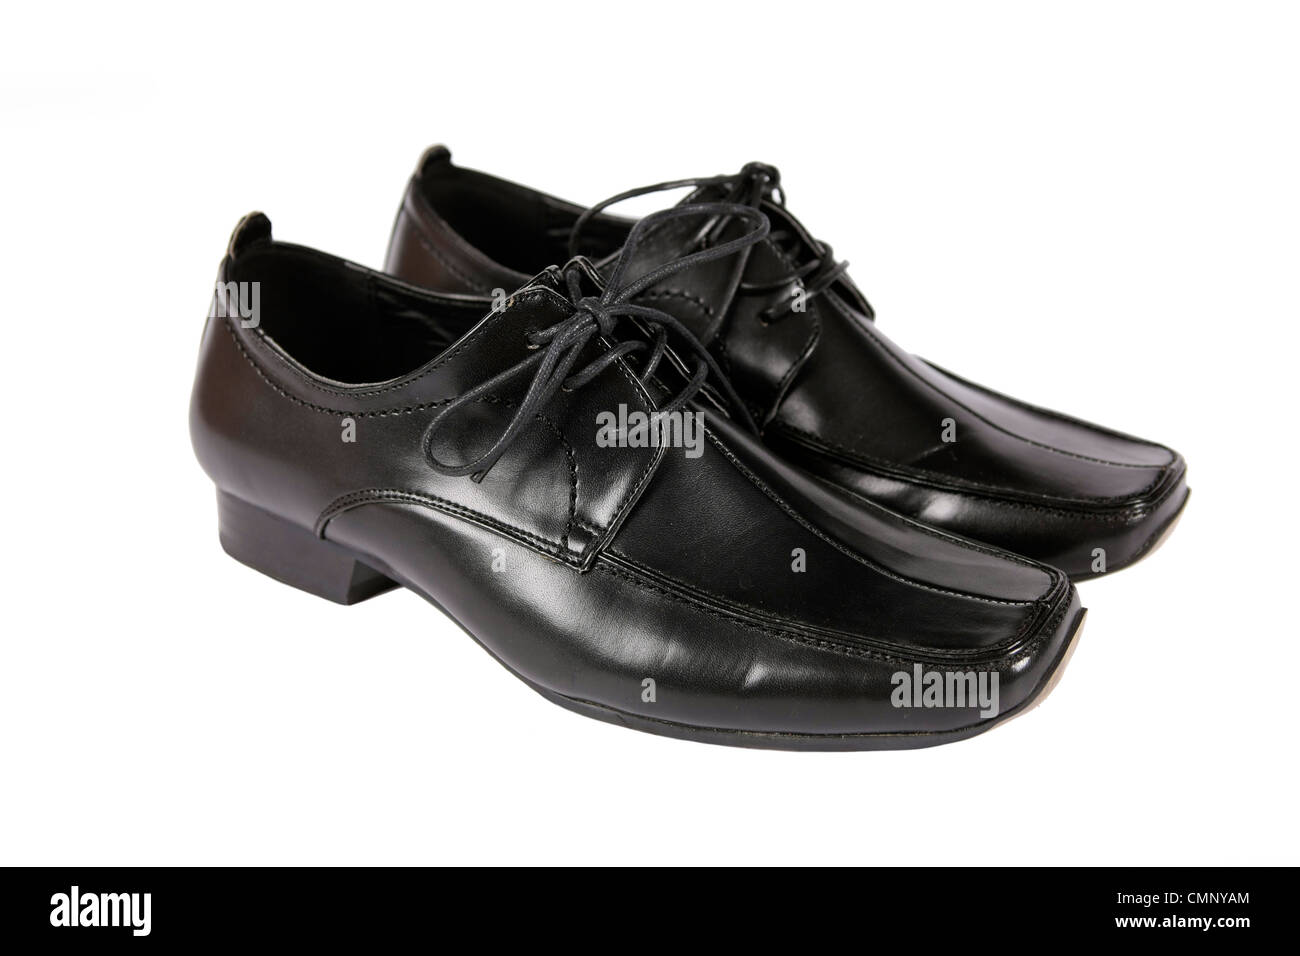 Man's Black dress shoes on a white background - Stock Image